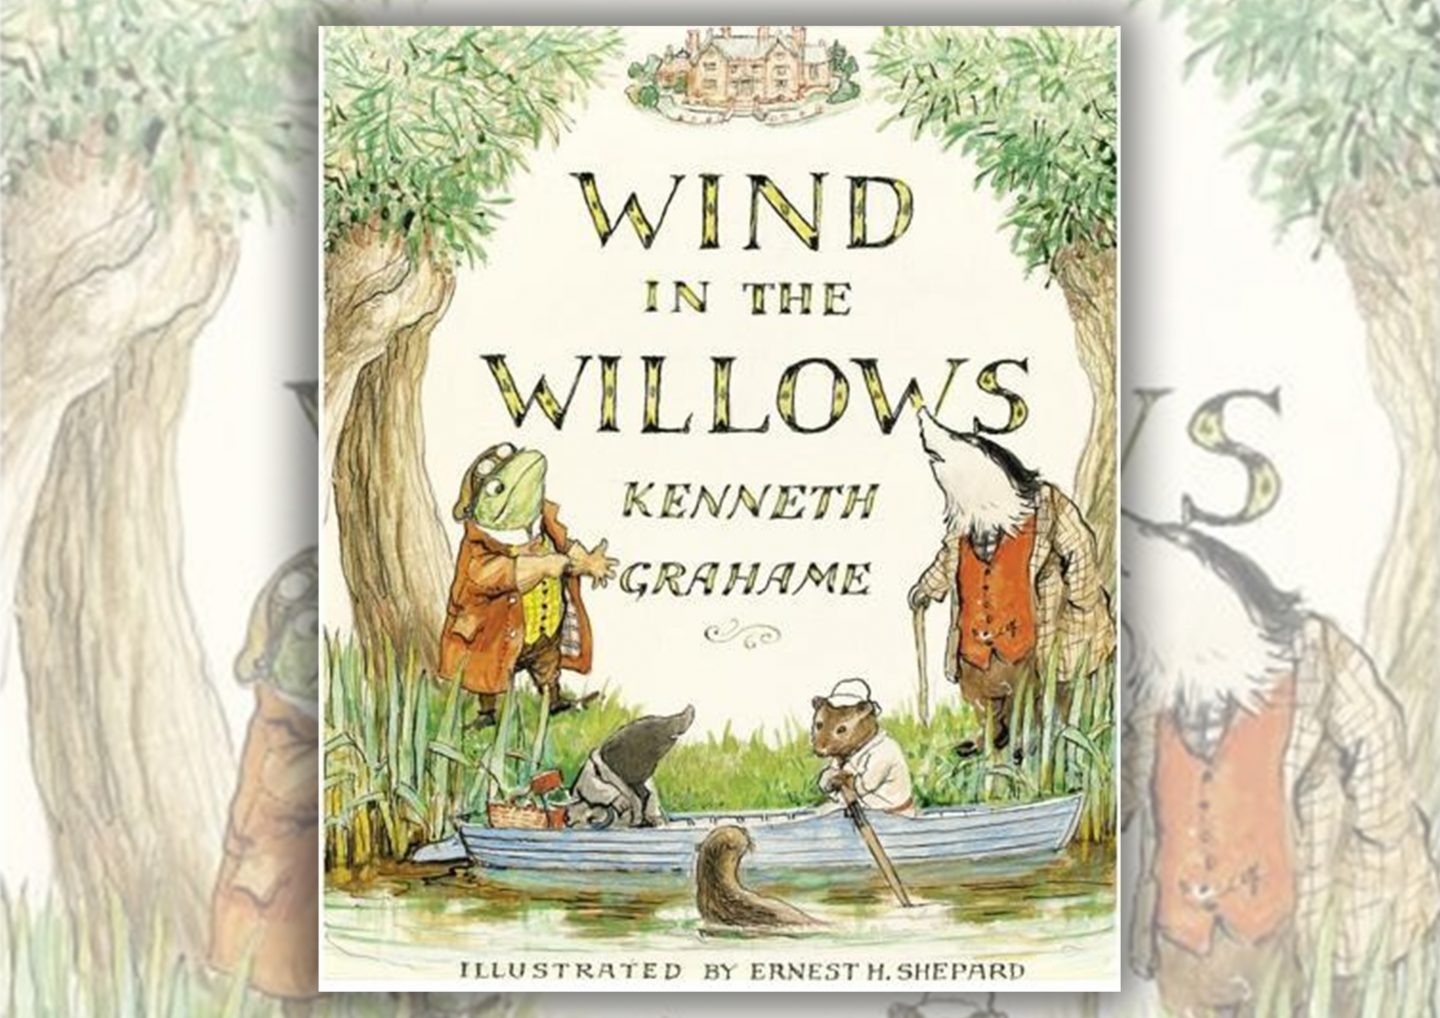 Review: The Wind In The Willows by Kenneth Grahame